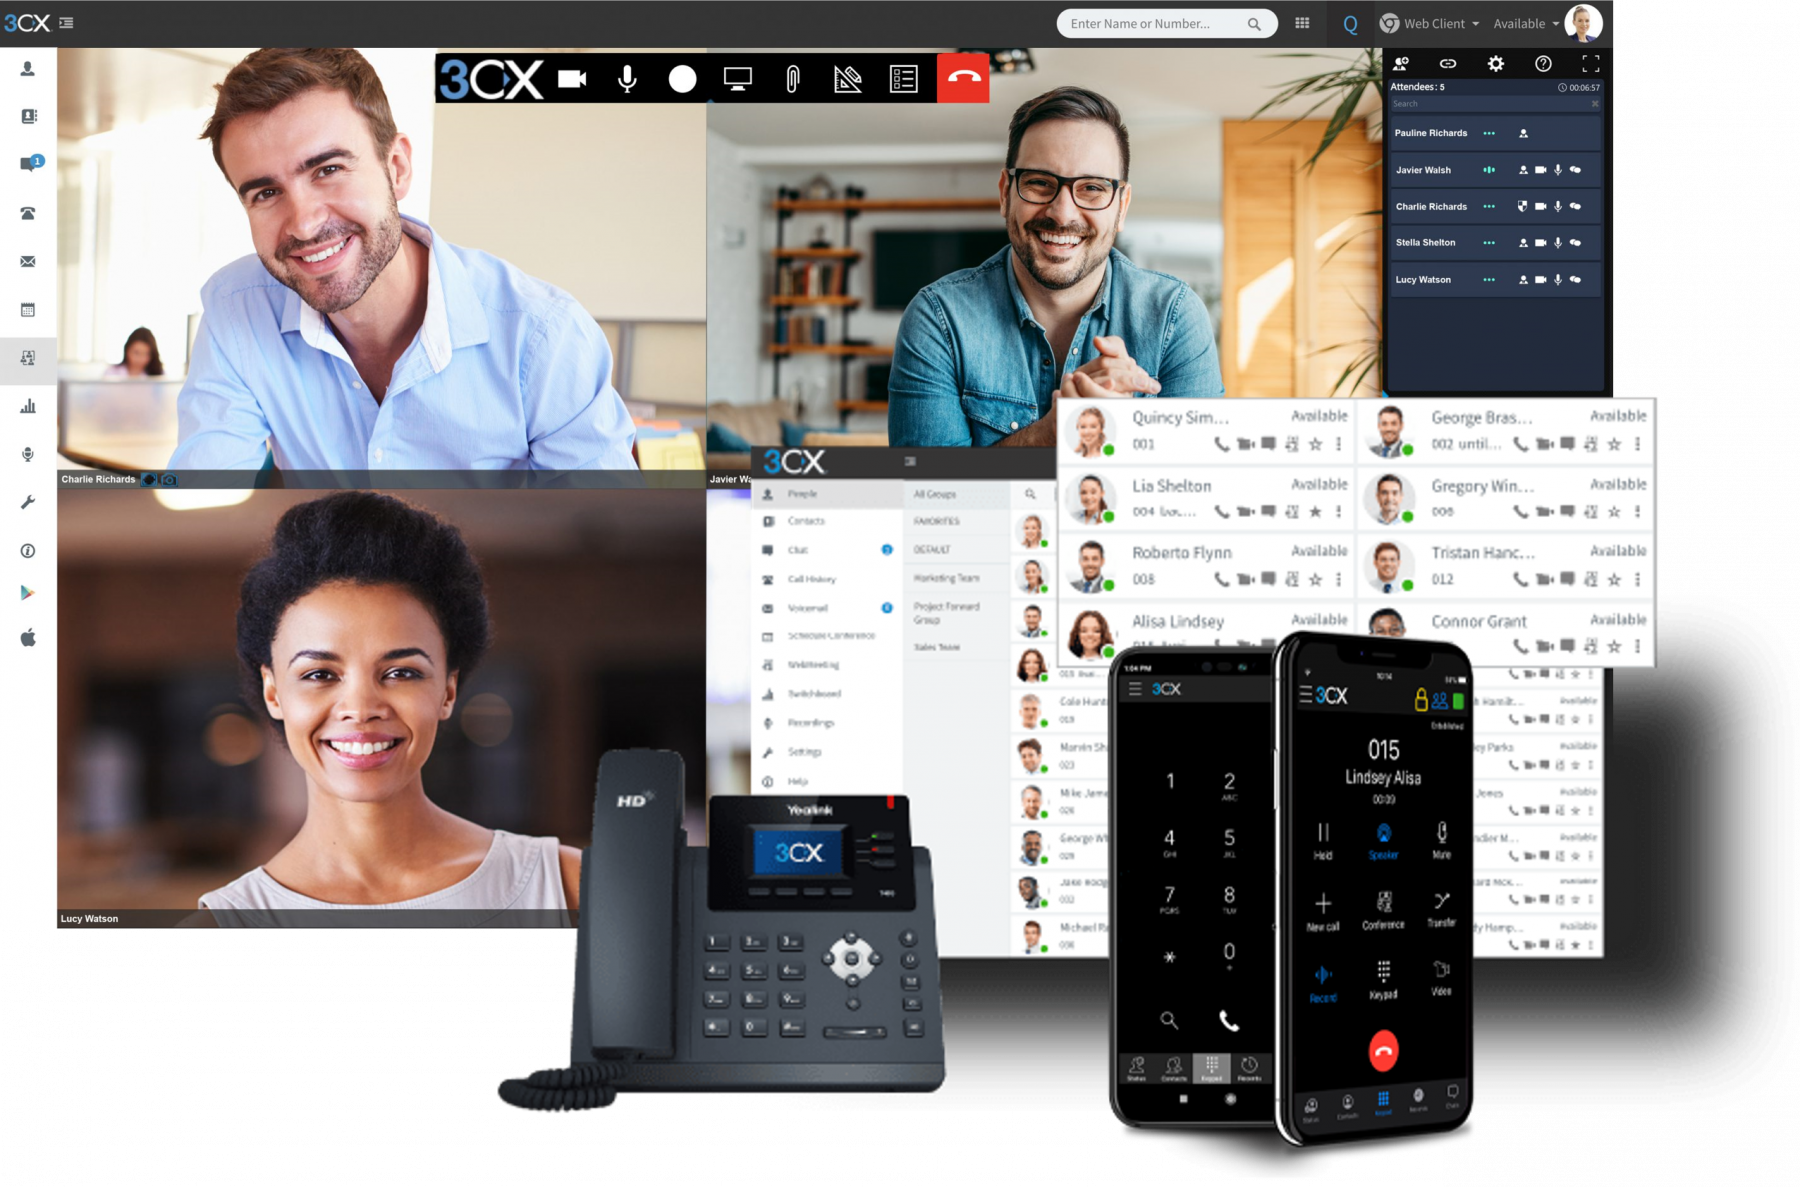 3CX fully managed PBX solution